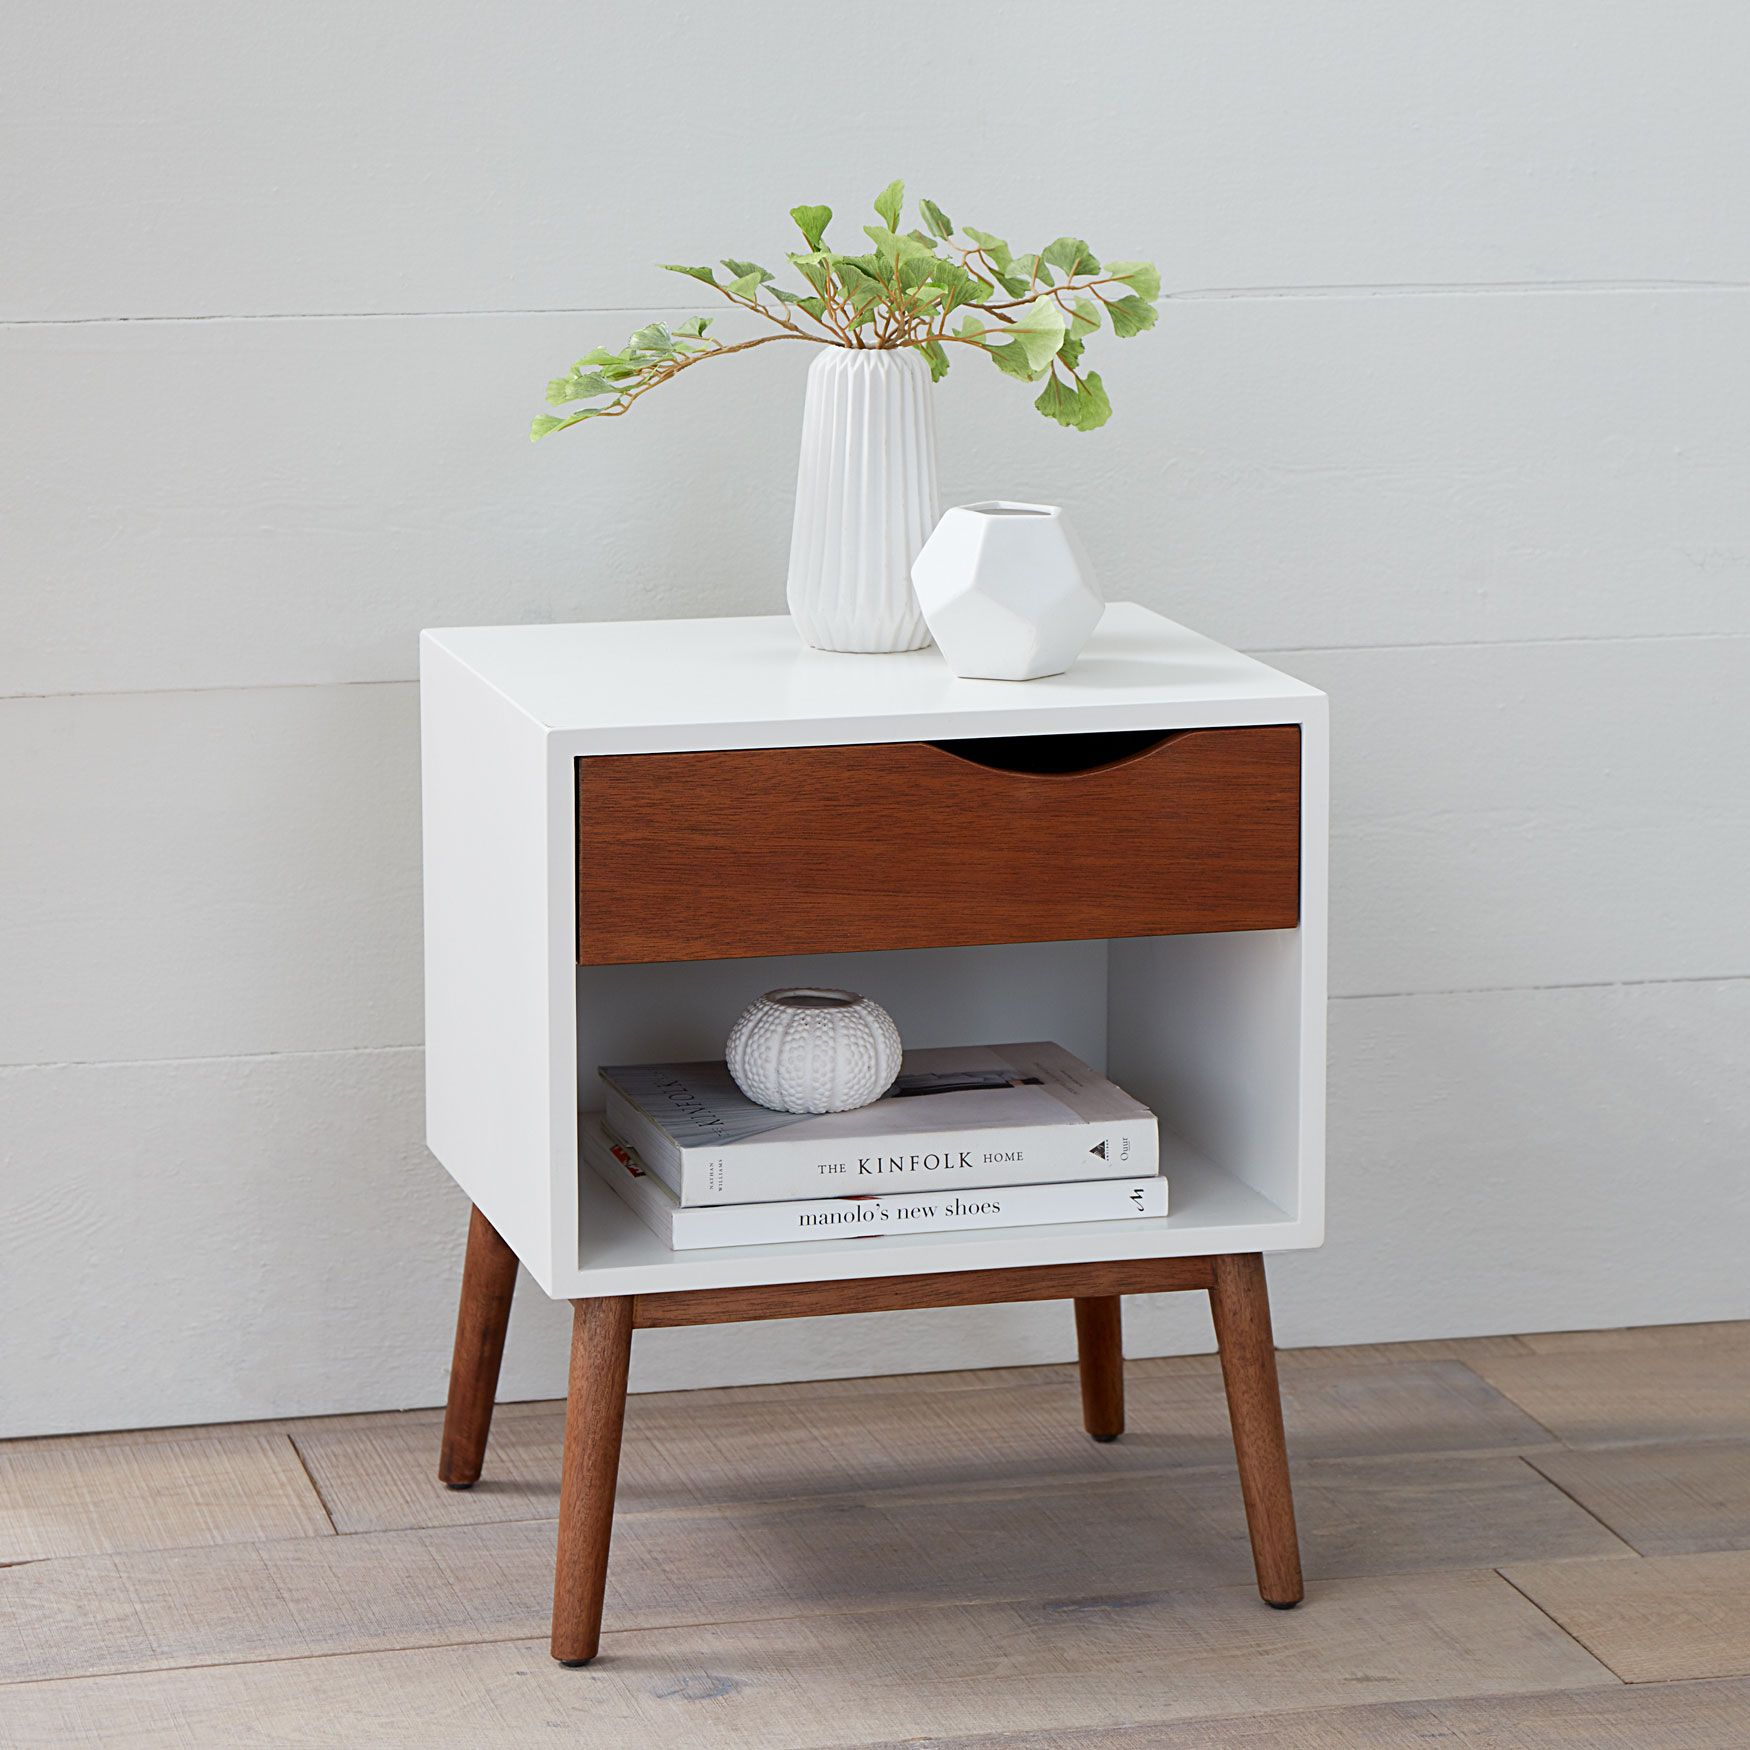 Reena Retro Side Table, WHITE NATURAL